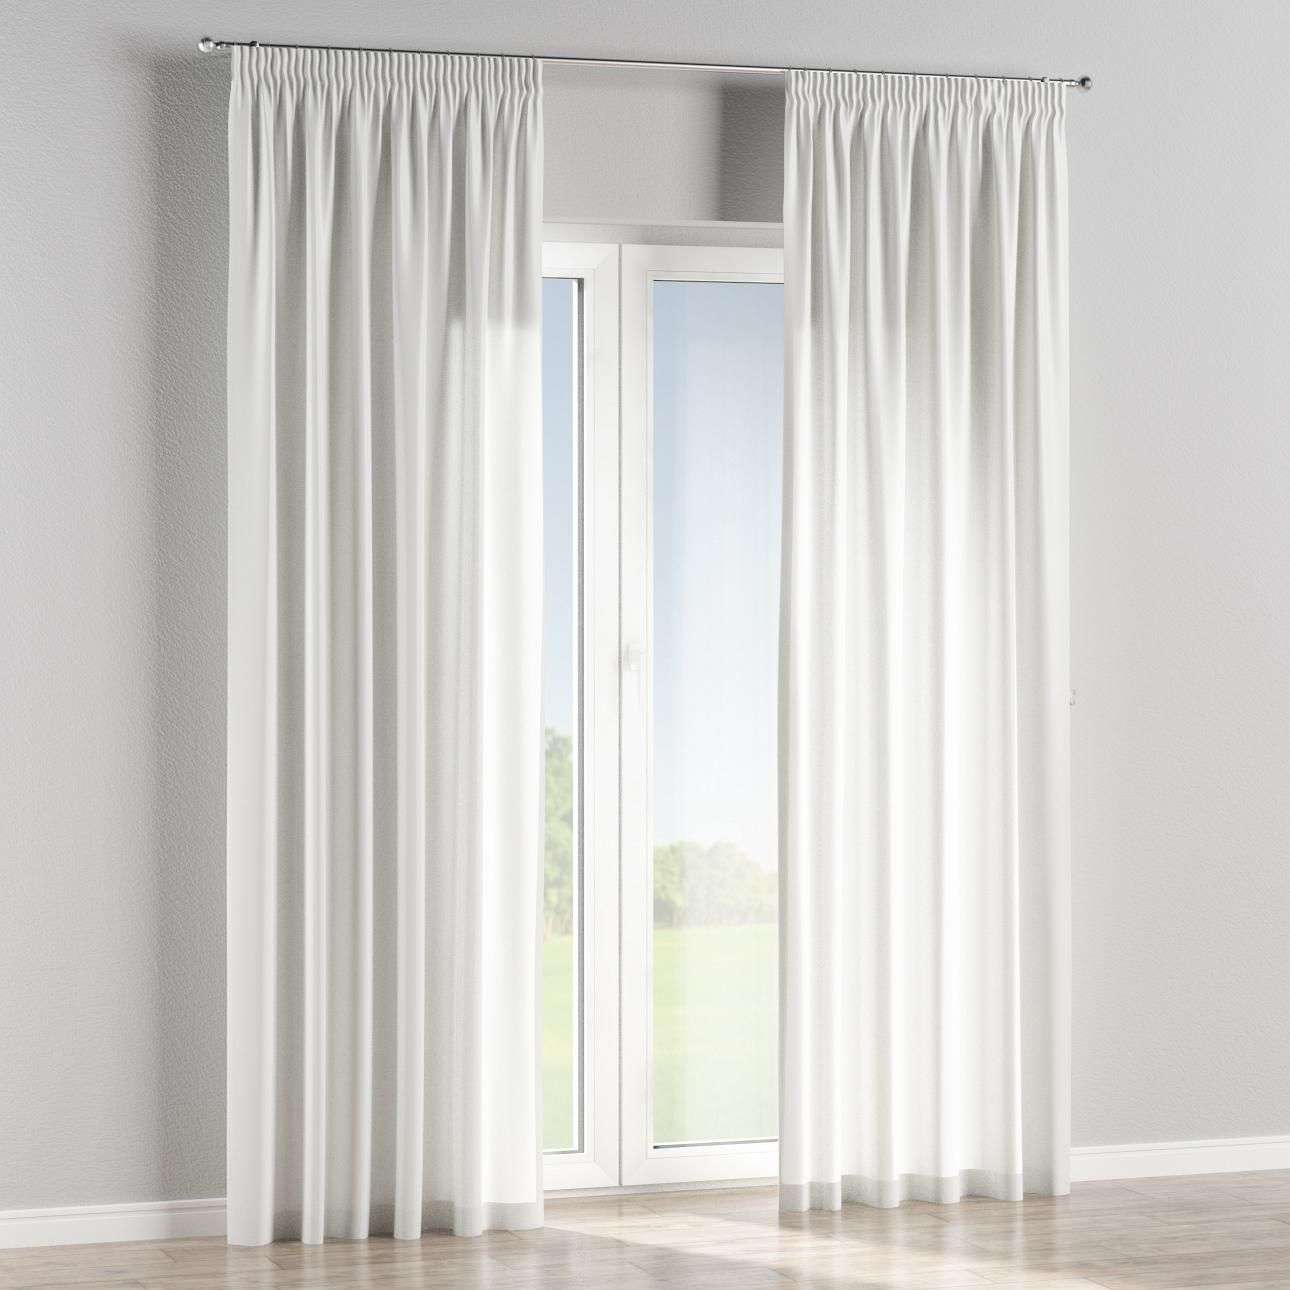 Pencil pleat curtains in collection Venice, fabric: 140-53